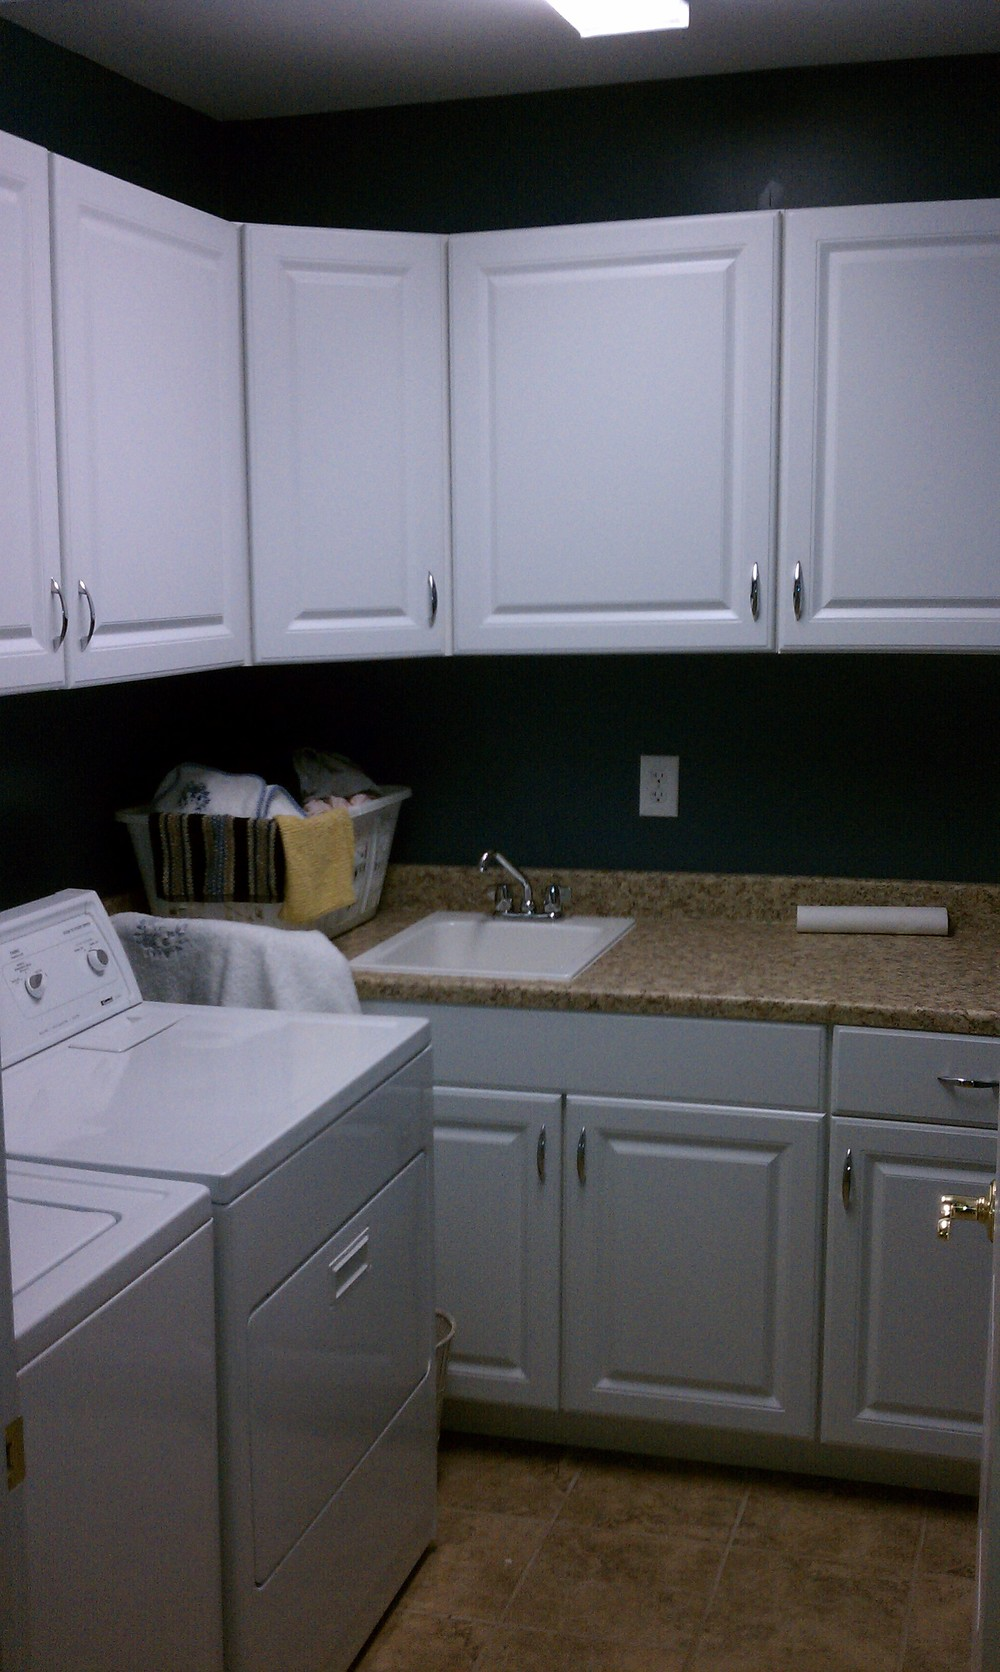 Over the Rhine Laundry Room Sink Install